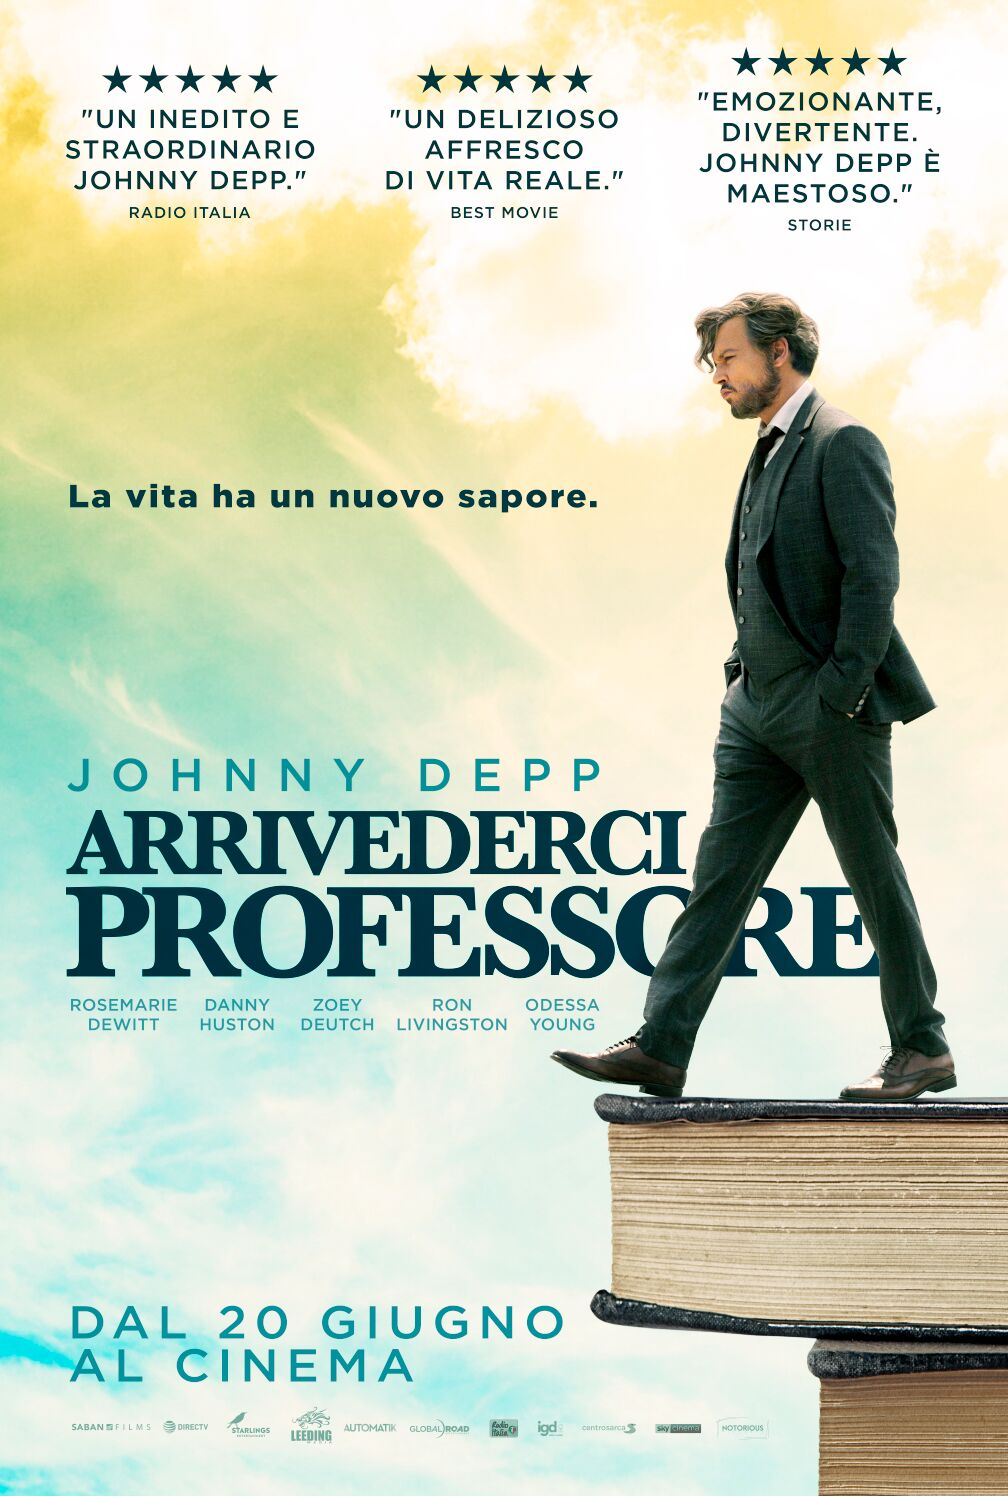 Arrivederci professore, Johnny Depp di nuovo al cinema 5